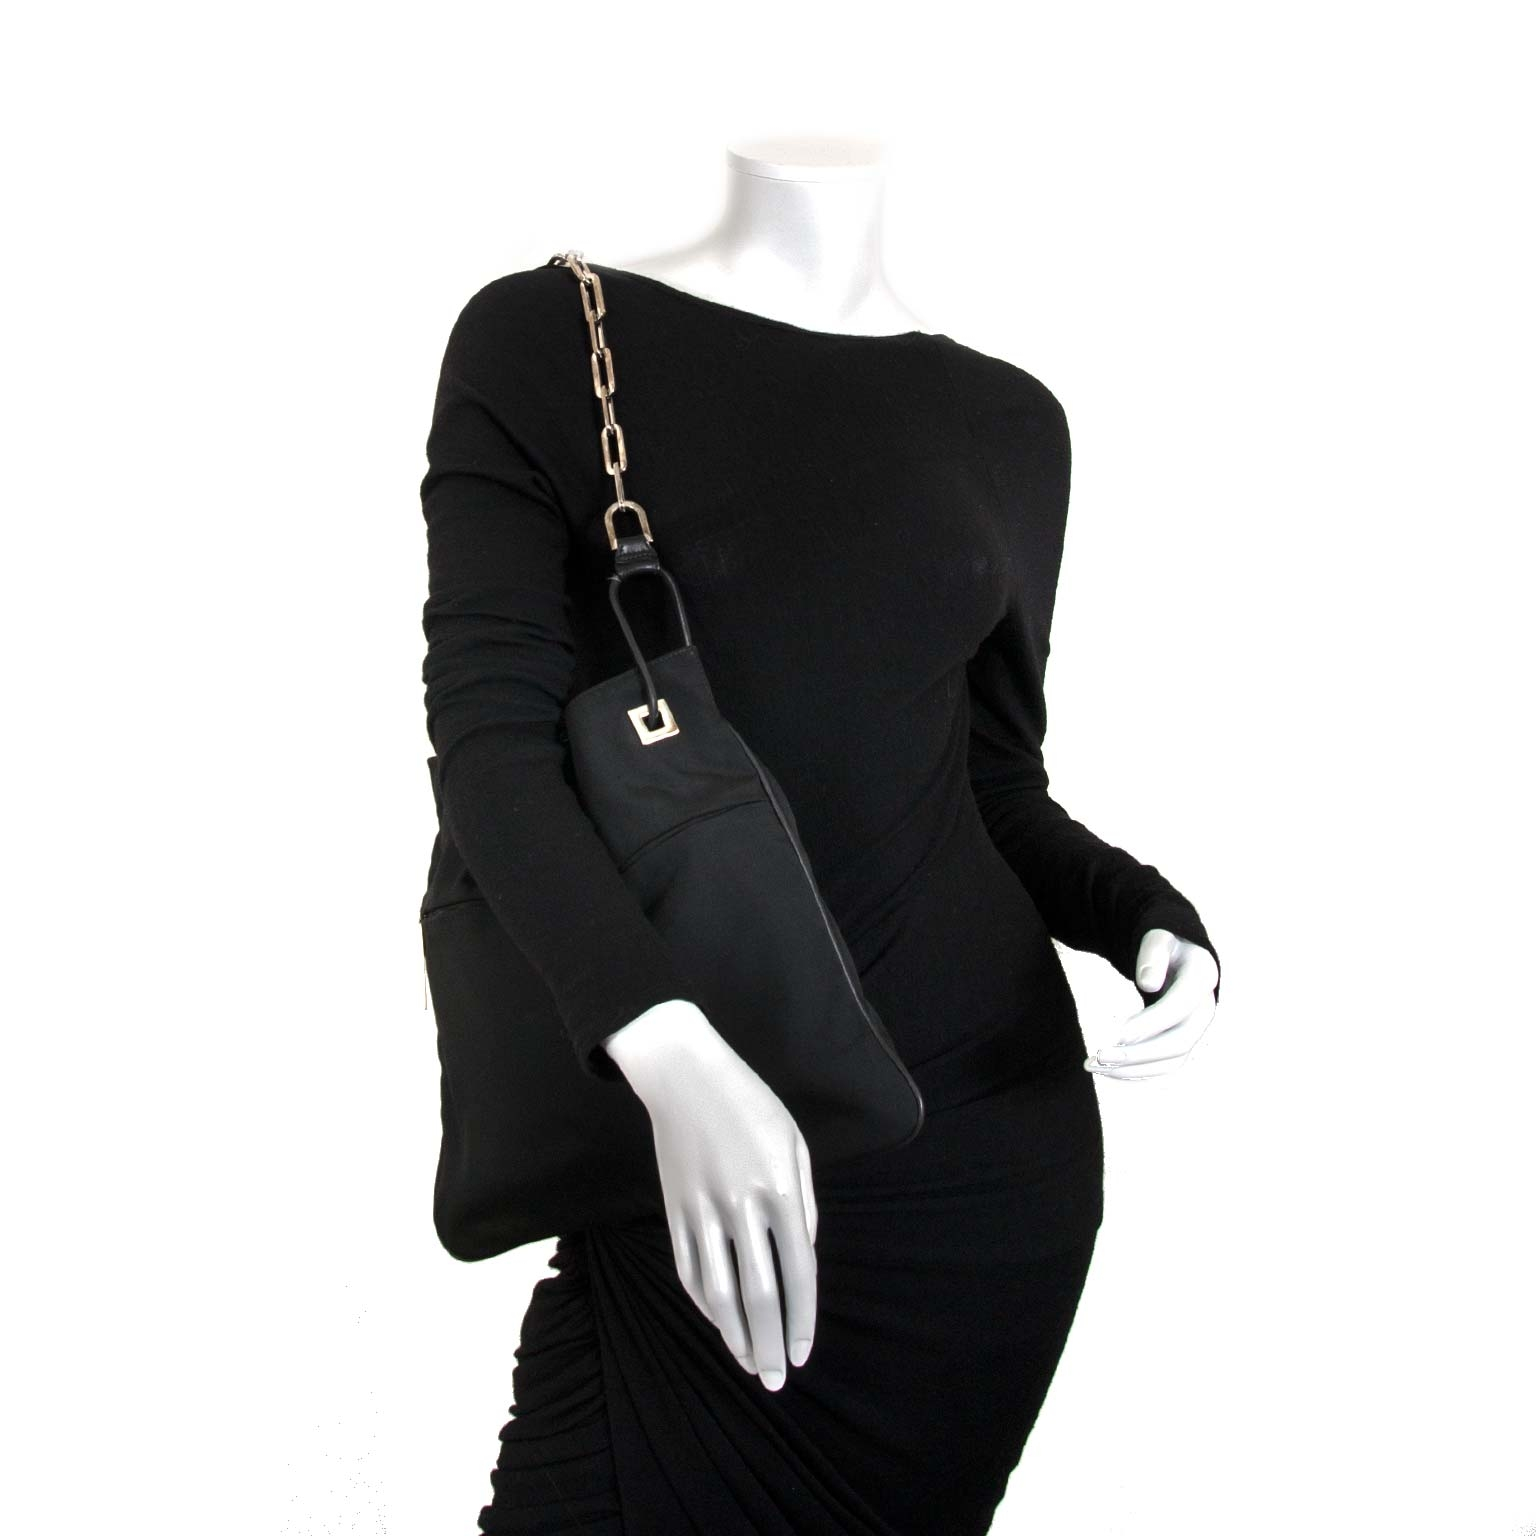 gucci black fabric metal chain shopper now for sale at labellov vintage fashion webshop belgium